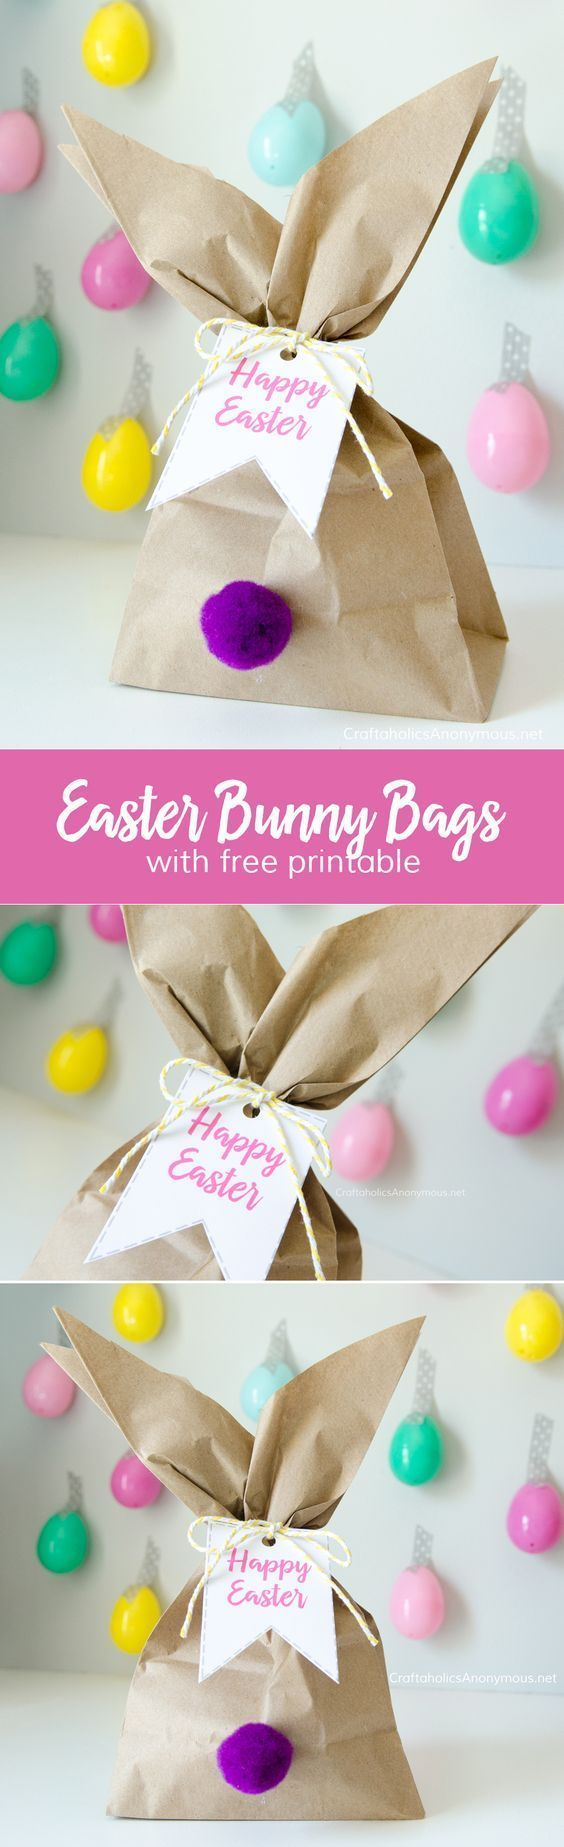 99 best easter crafts for kids images on pinterest crafts for kids easter bunny gift bags with free printable tags negle Gallery